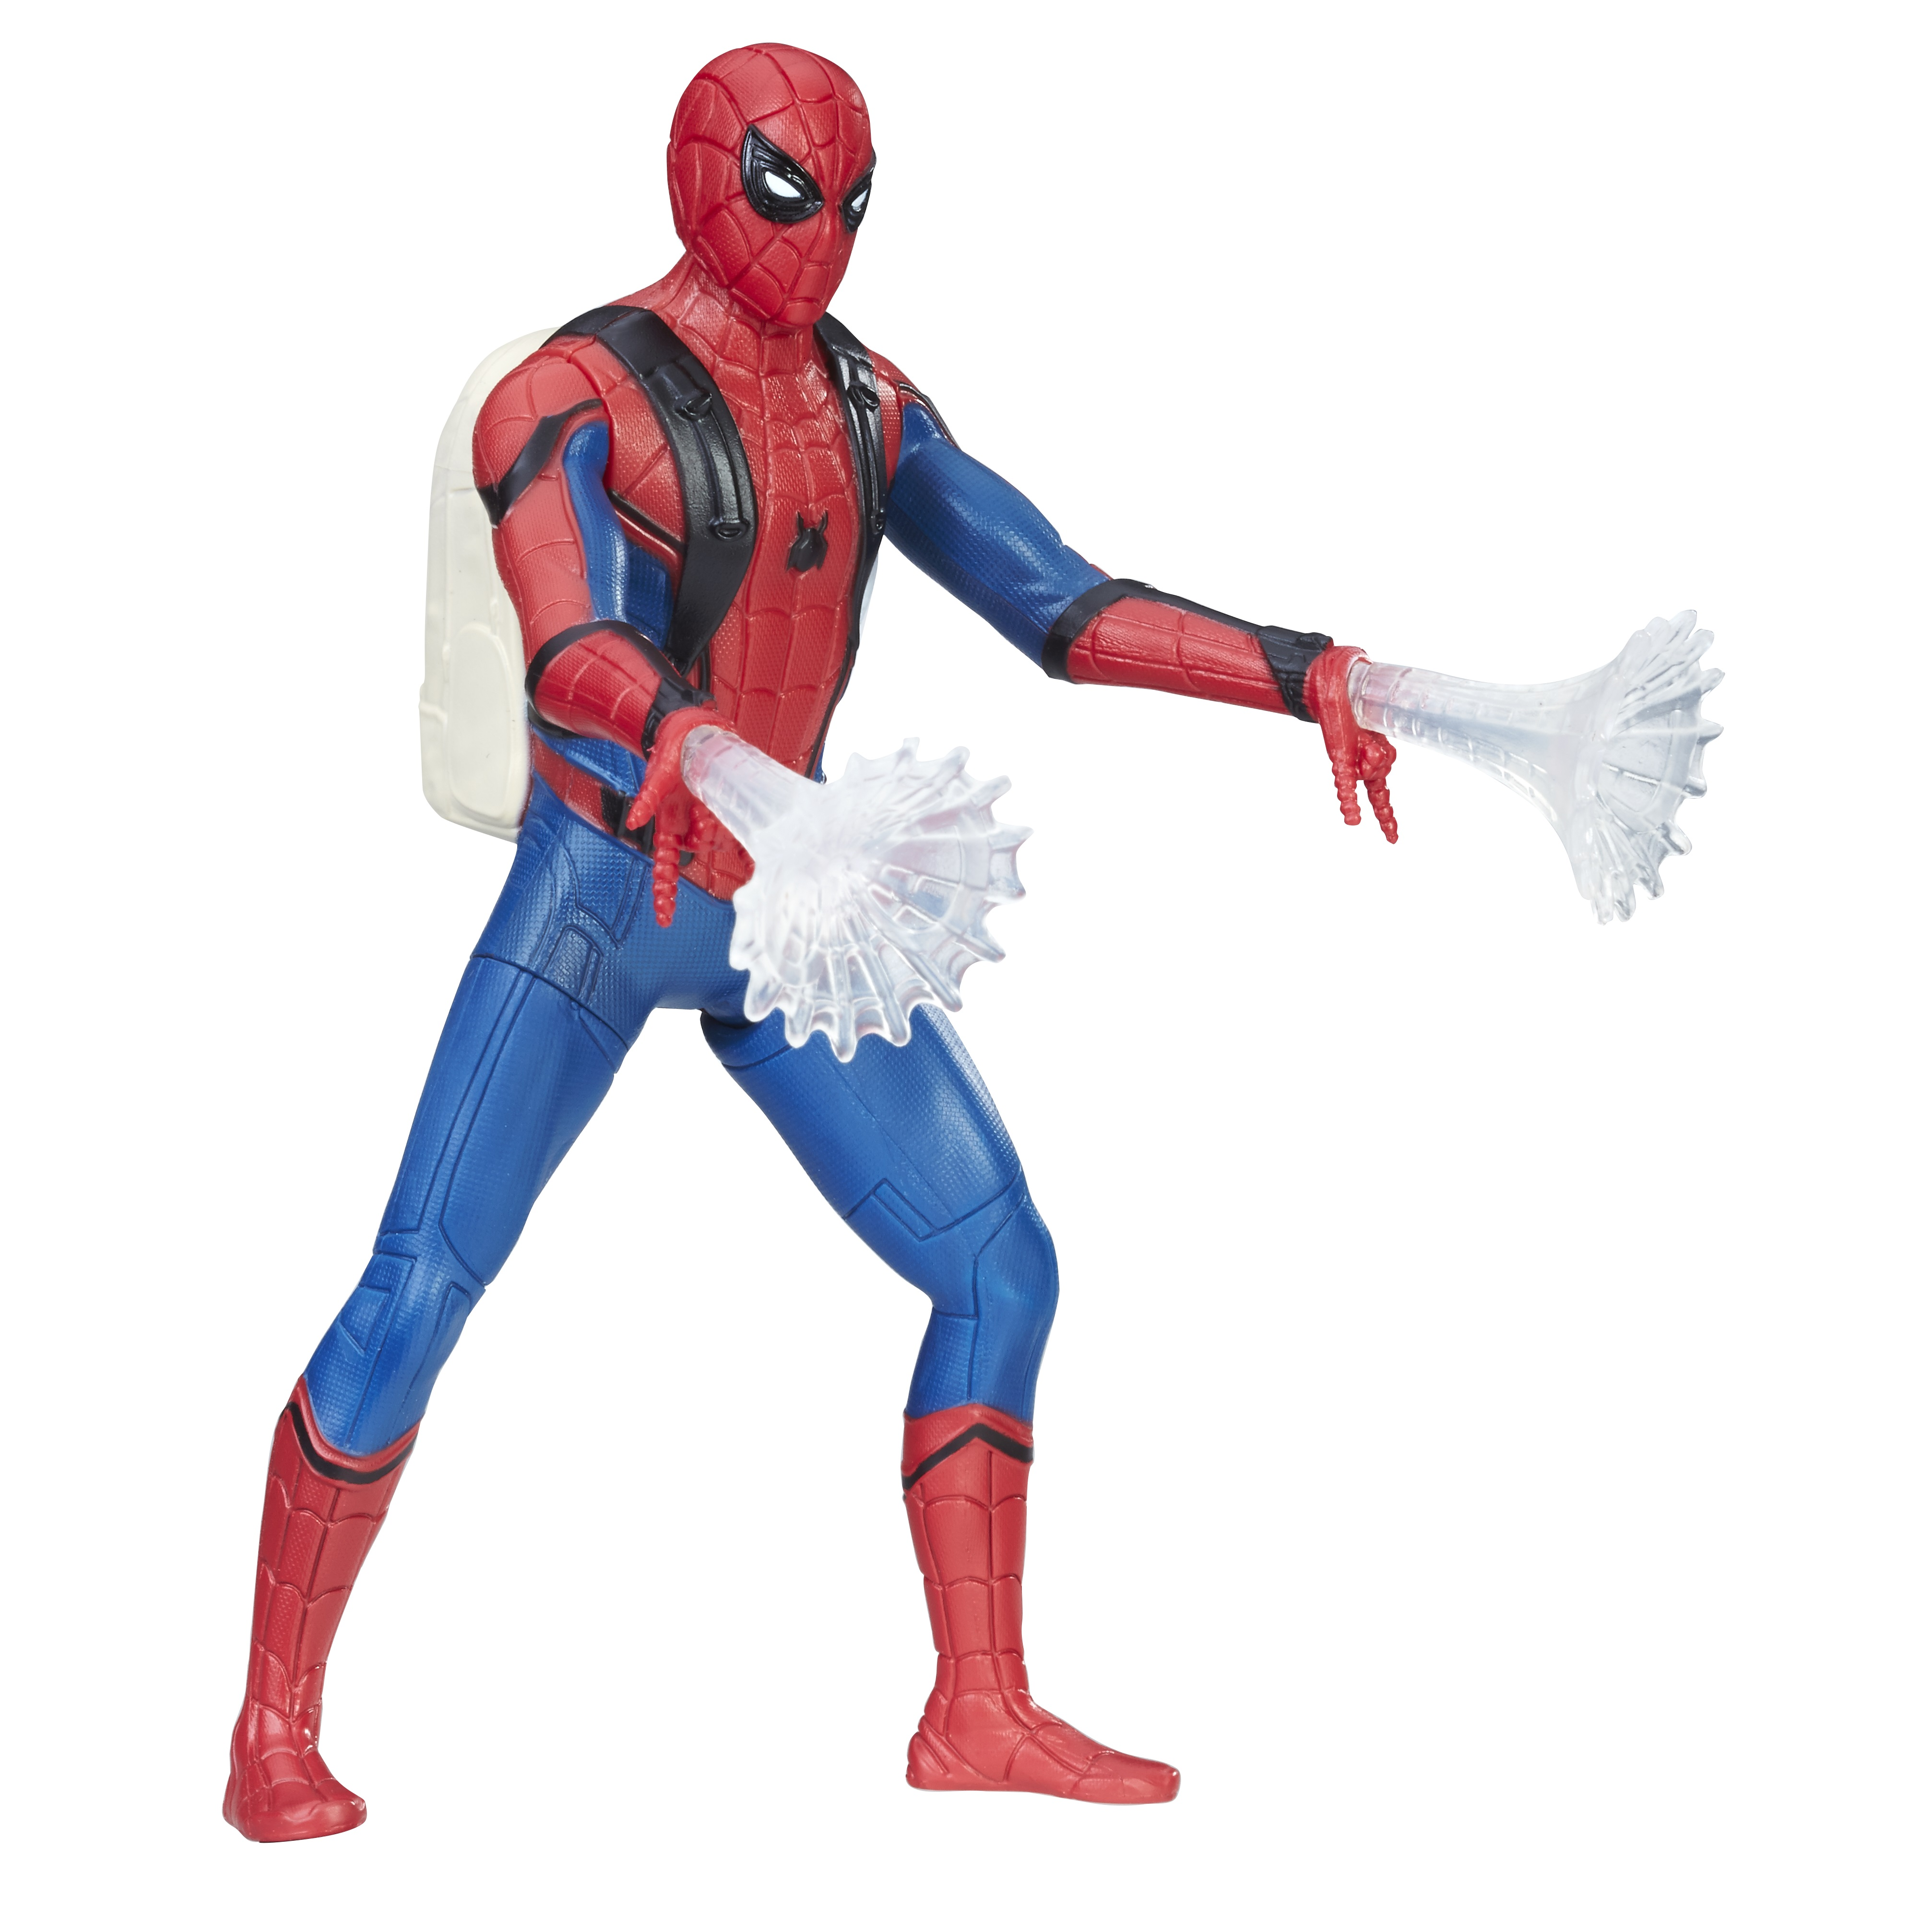 SPIDER-MAN-HOMECOMING-6-INCH-FEATURE-Figure-Assortment-Spider-Man